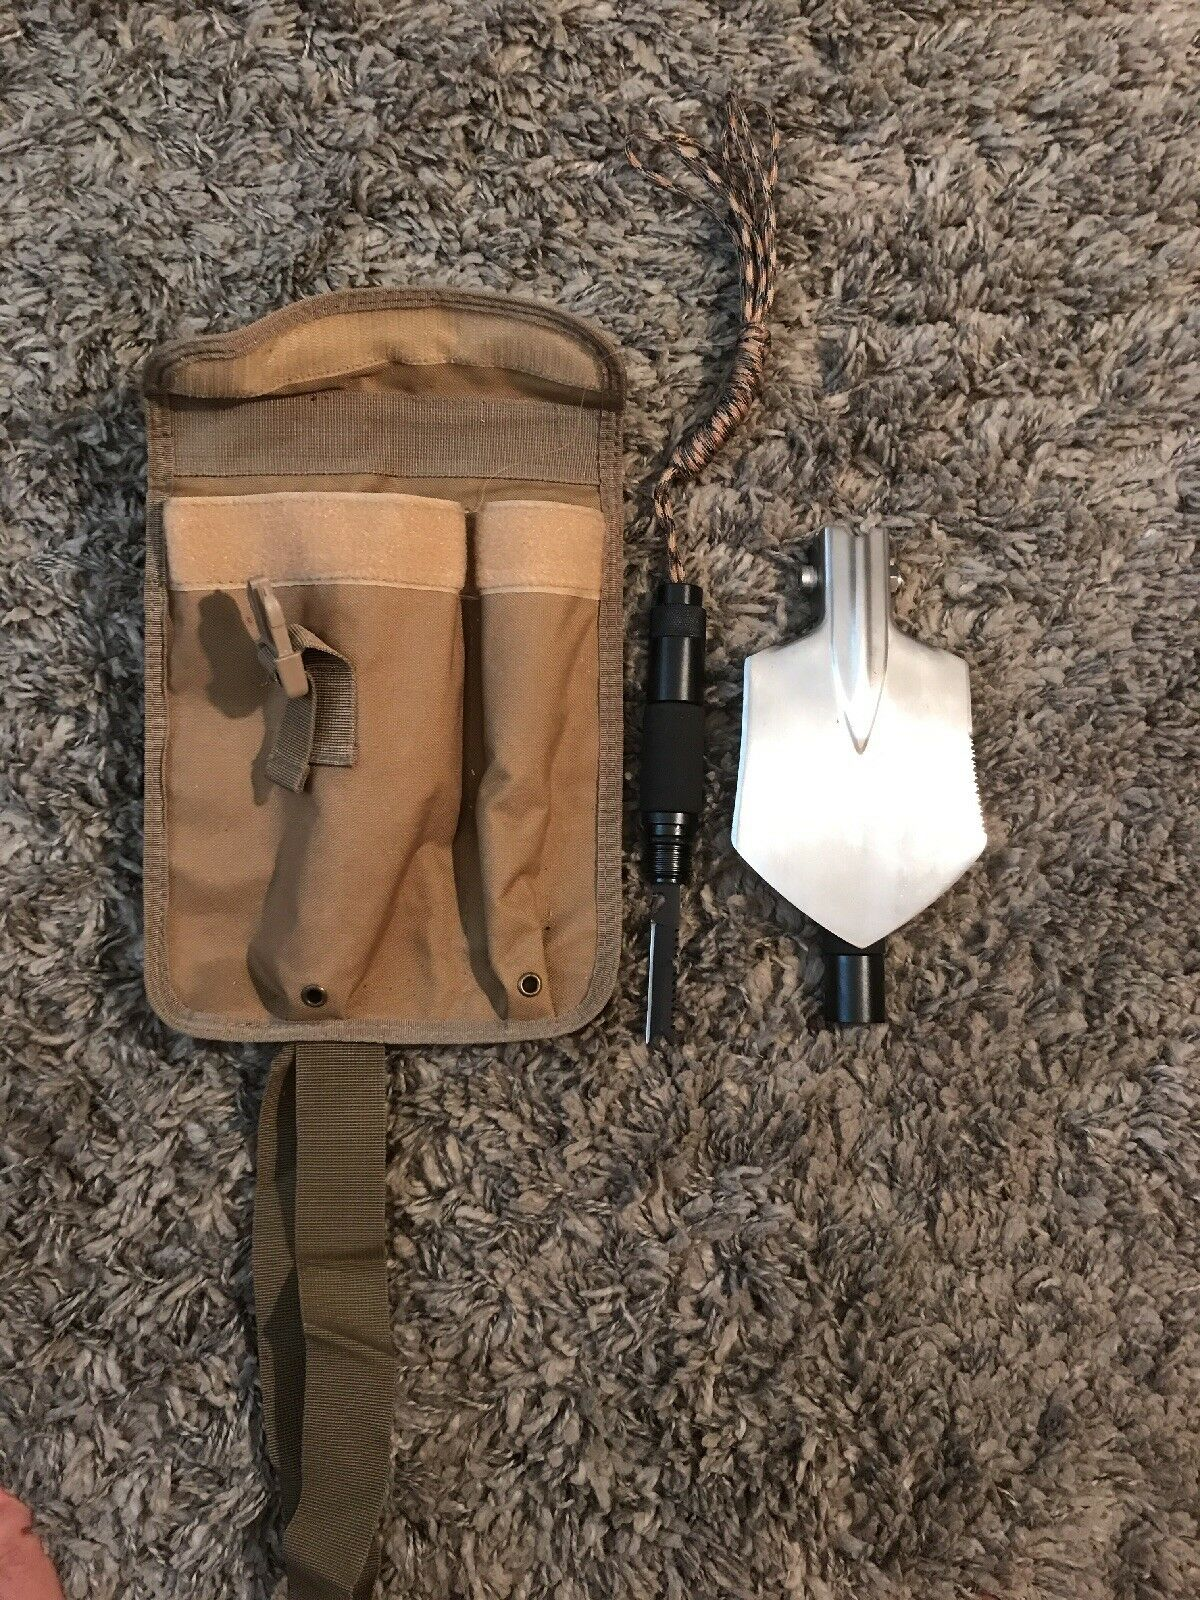 Hiking Shovel, Camping Gear, Outdoor supplies, Survival